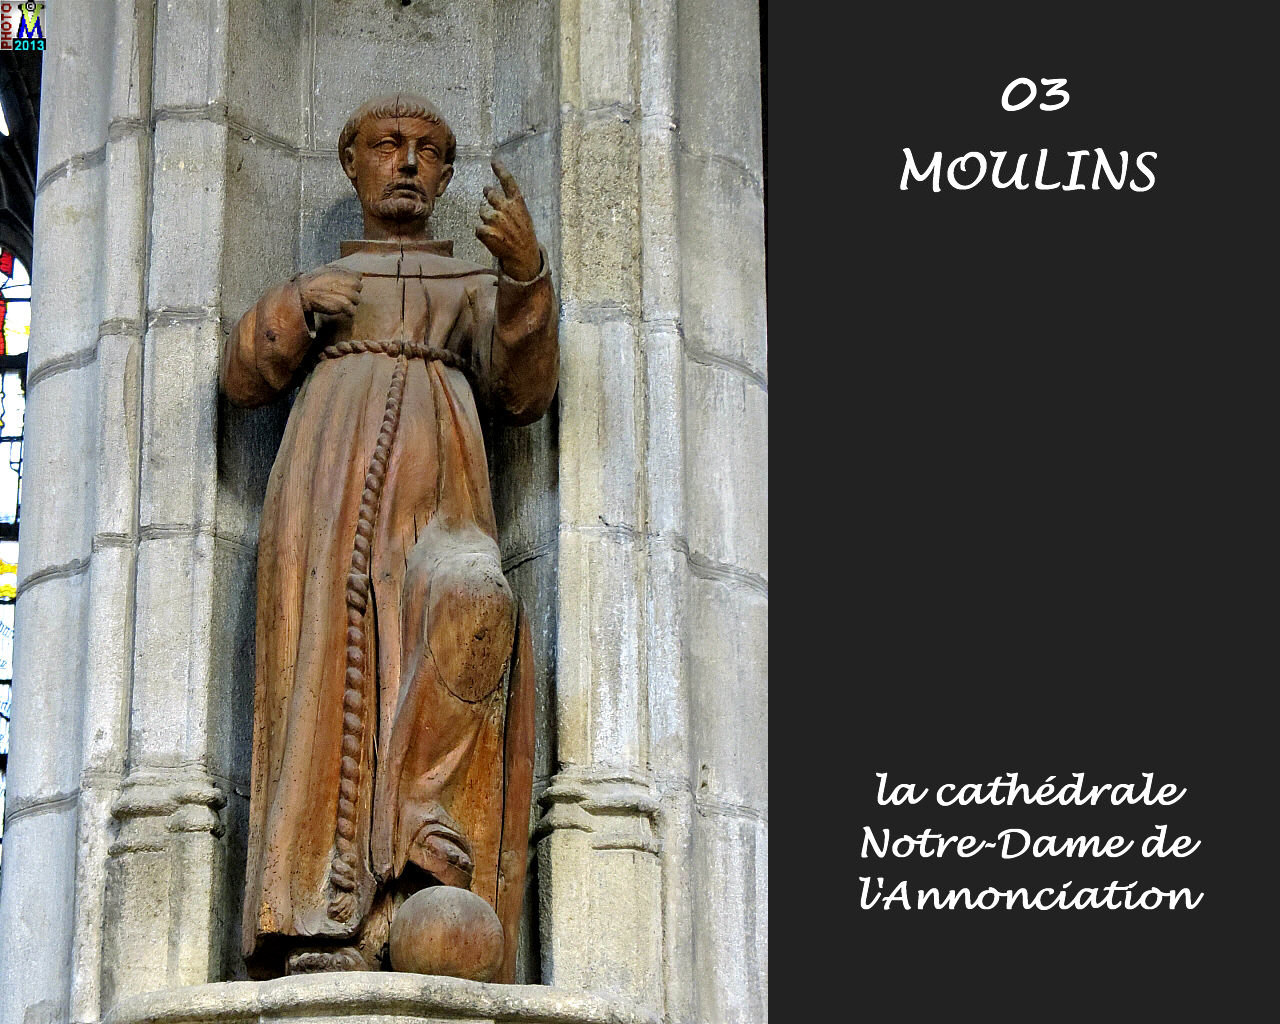 03MOULINS_cathedrale_248.jpg